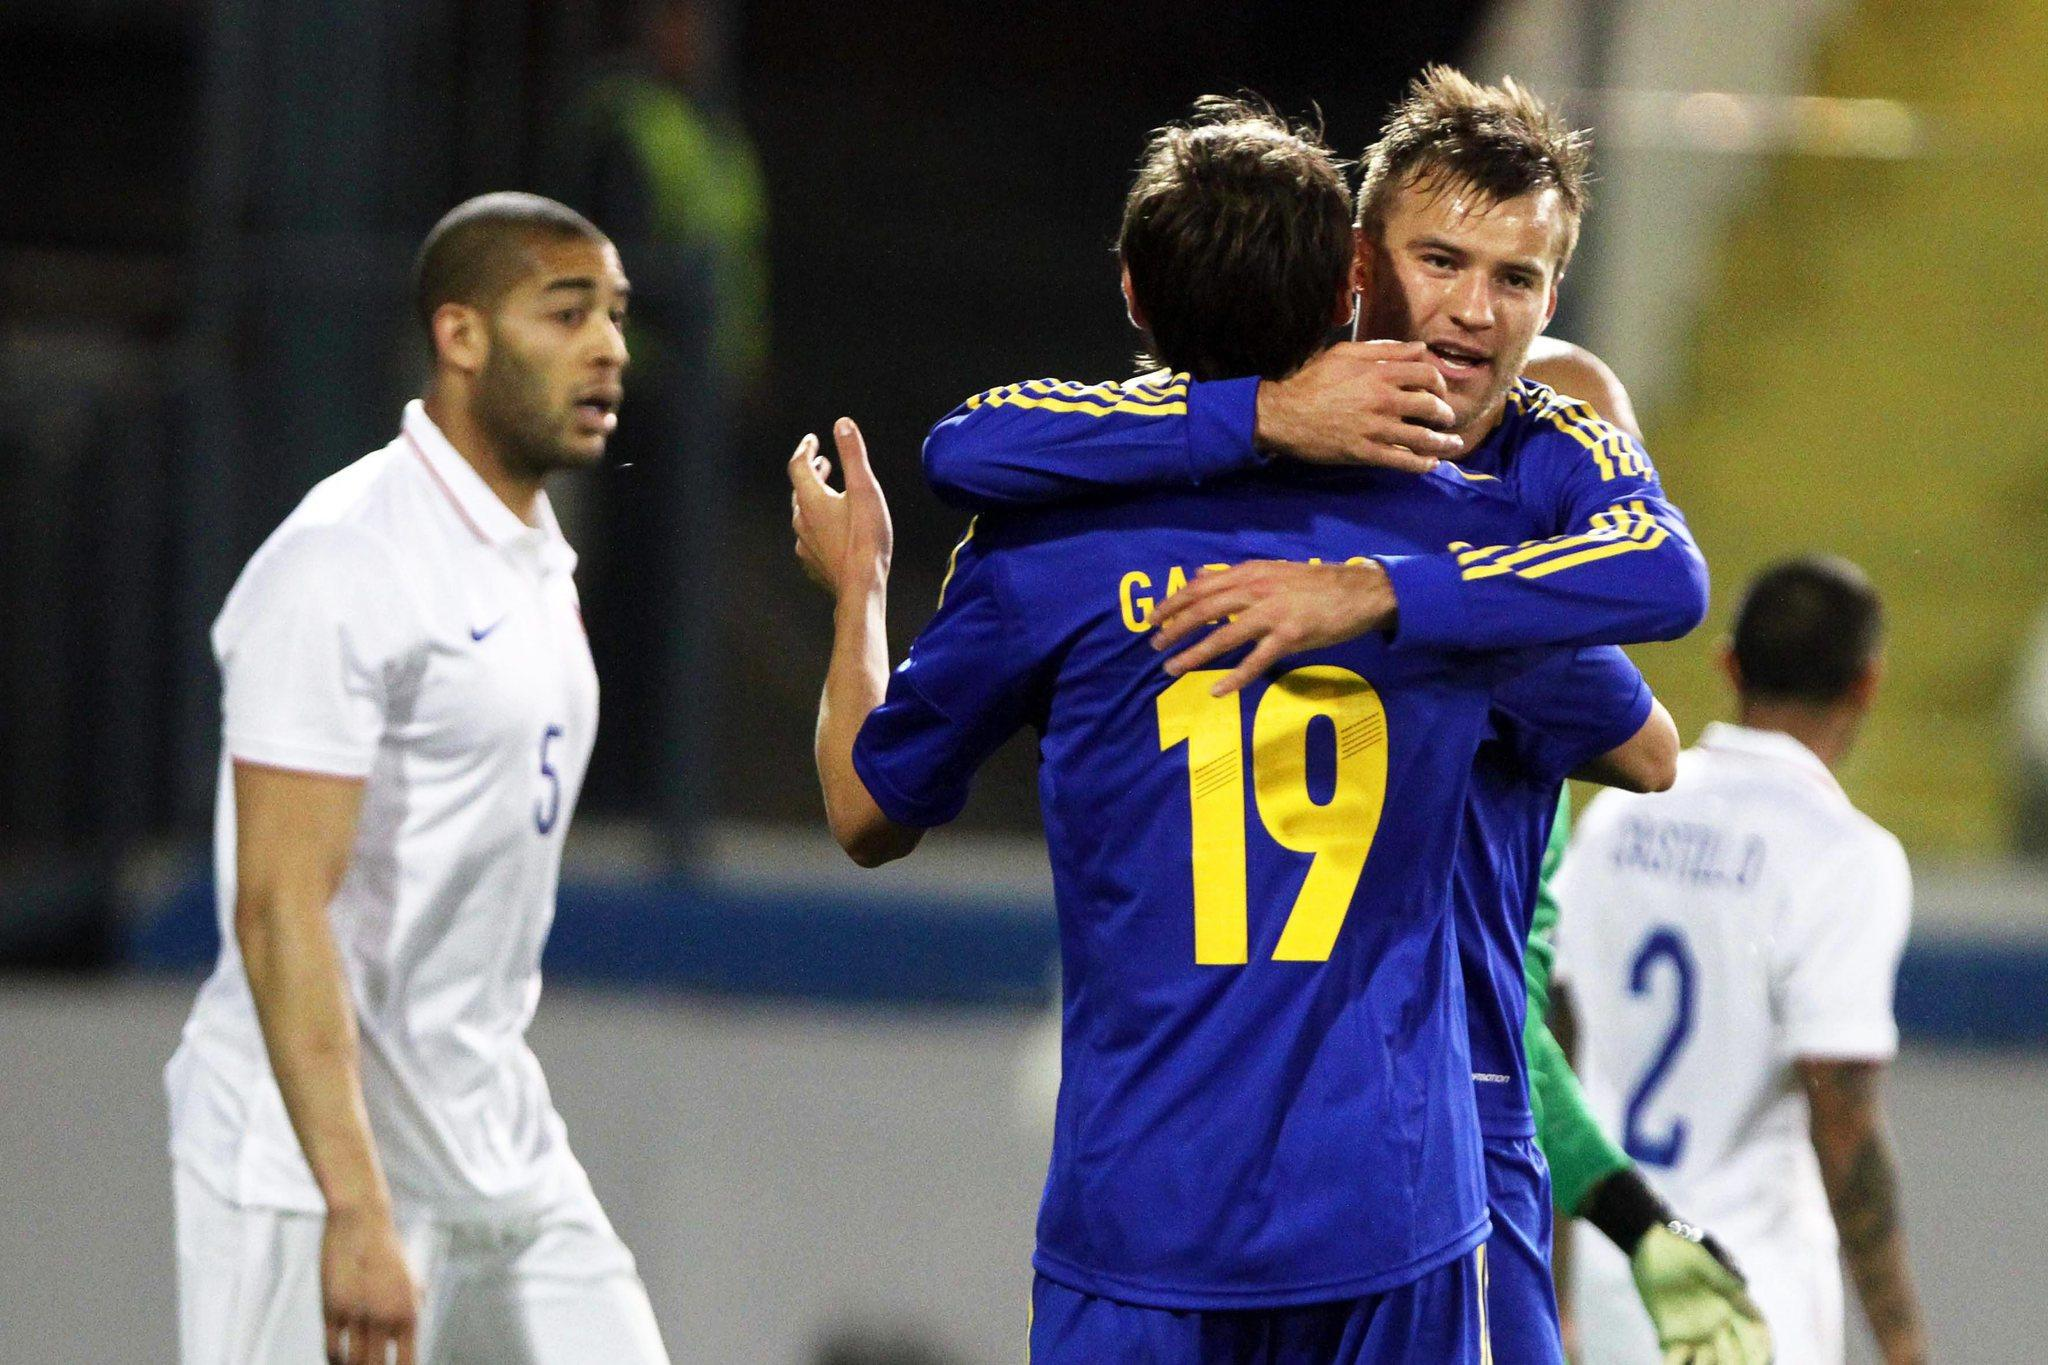 Ukraine's Andriy Yarmolenko (right) celebrates with his teammate Denys Garmash after scoring the game's first goal.